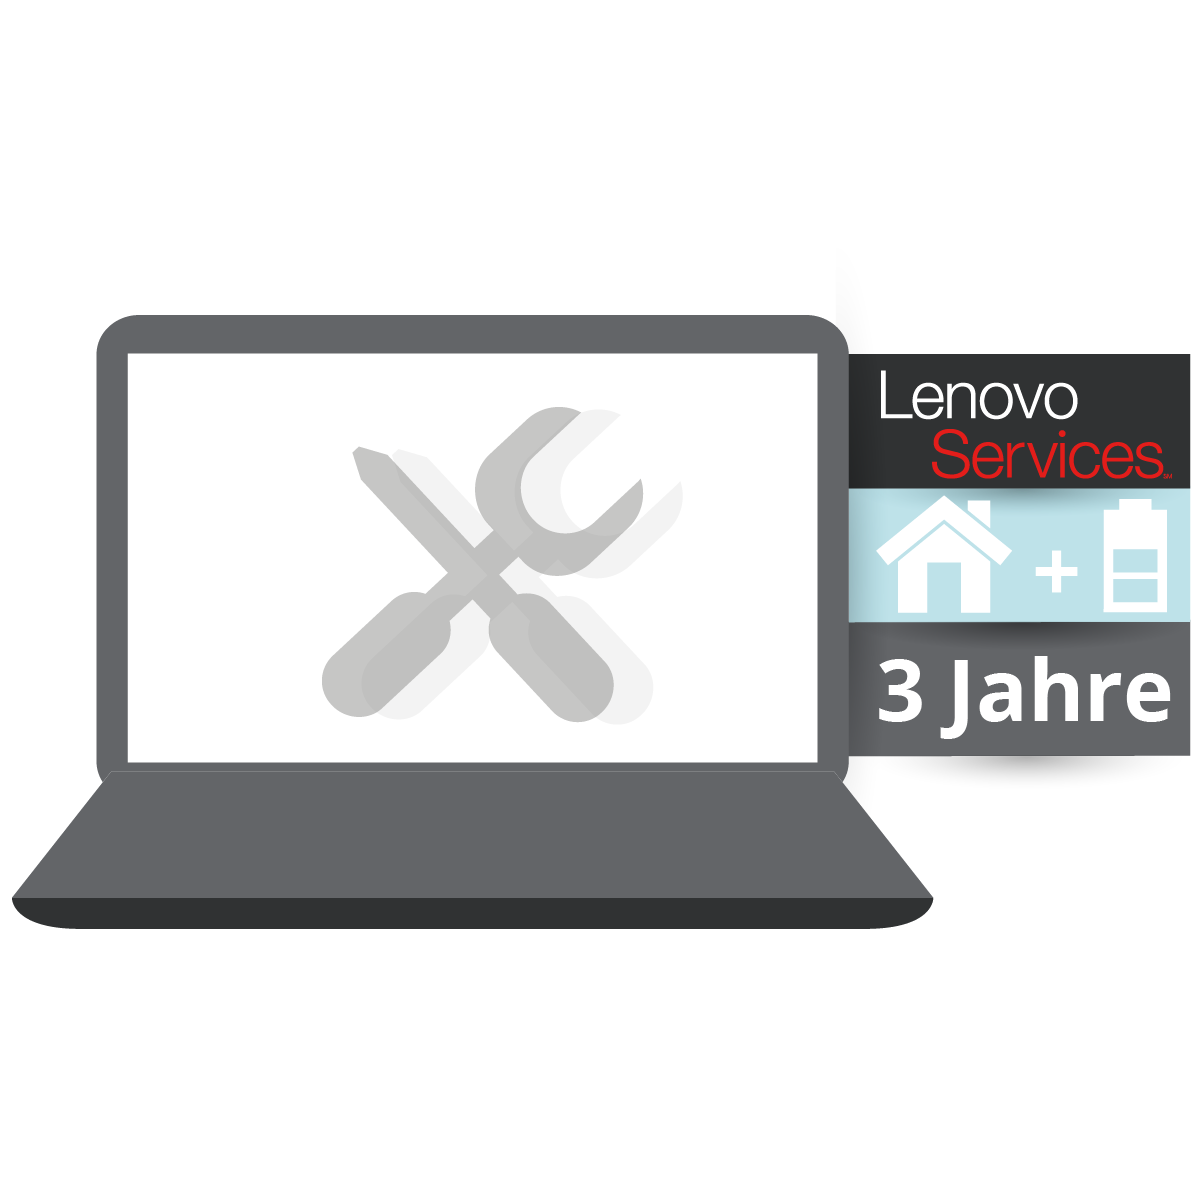 (EOL) Lenovo™ ThinkPlus® 3 Jahre Vor-Ort-Service (NBD) + Sealed Battery Replacement